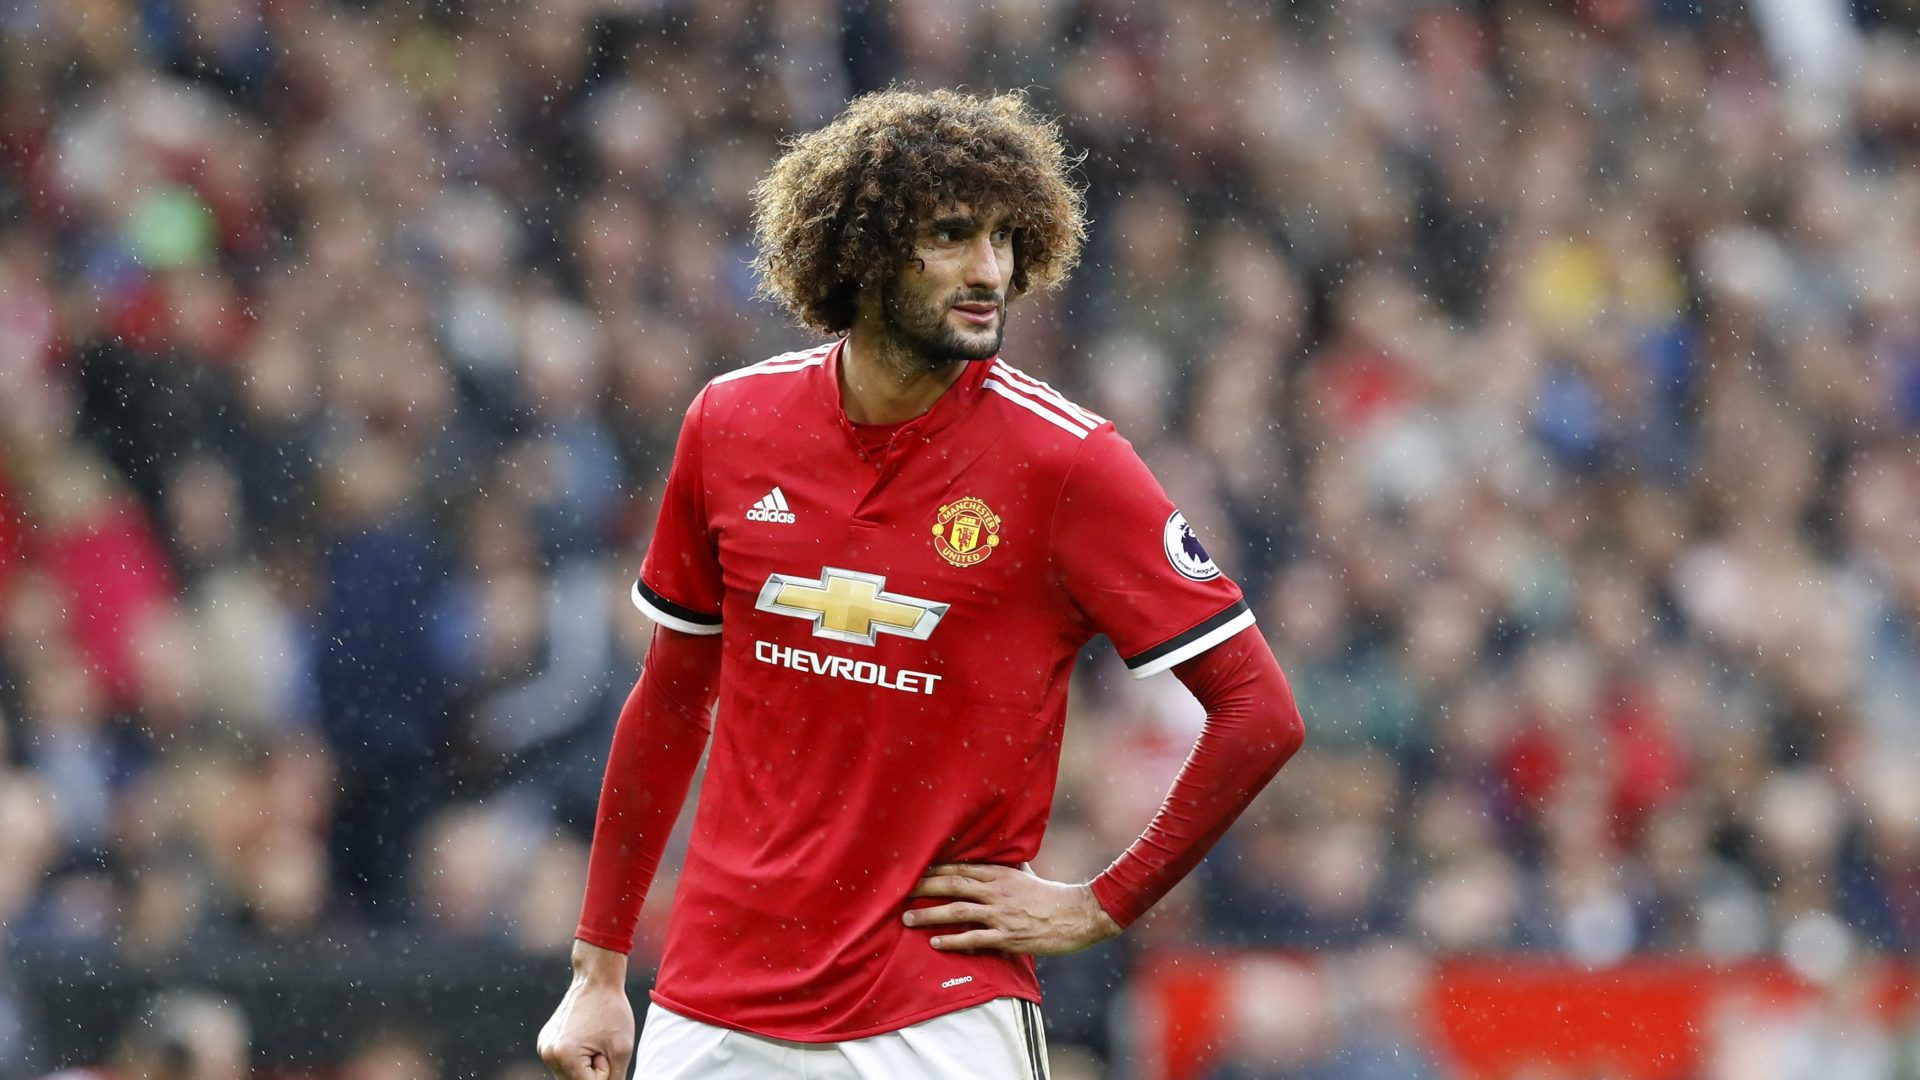 Football rumours from the media: Is Marouane Fellaini set for Paris St Germain?